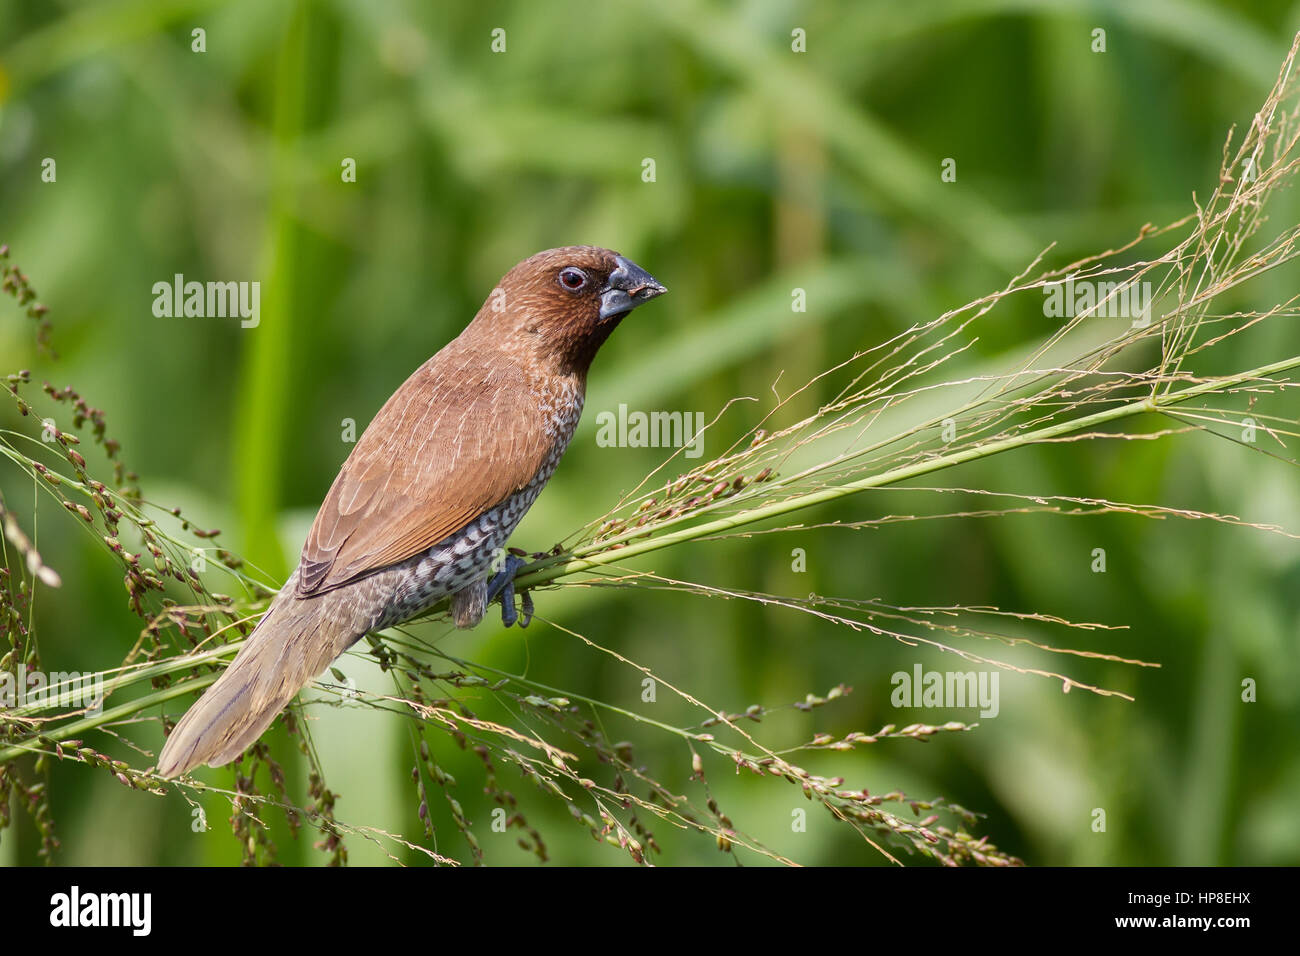 Scaly-breasted Munia eating grass seed - Stock Image